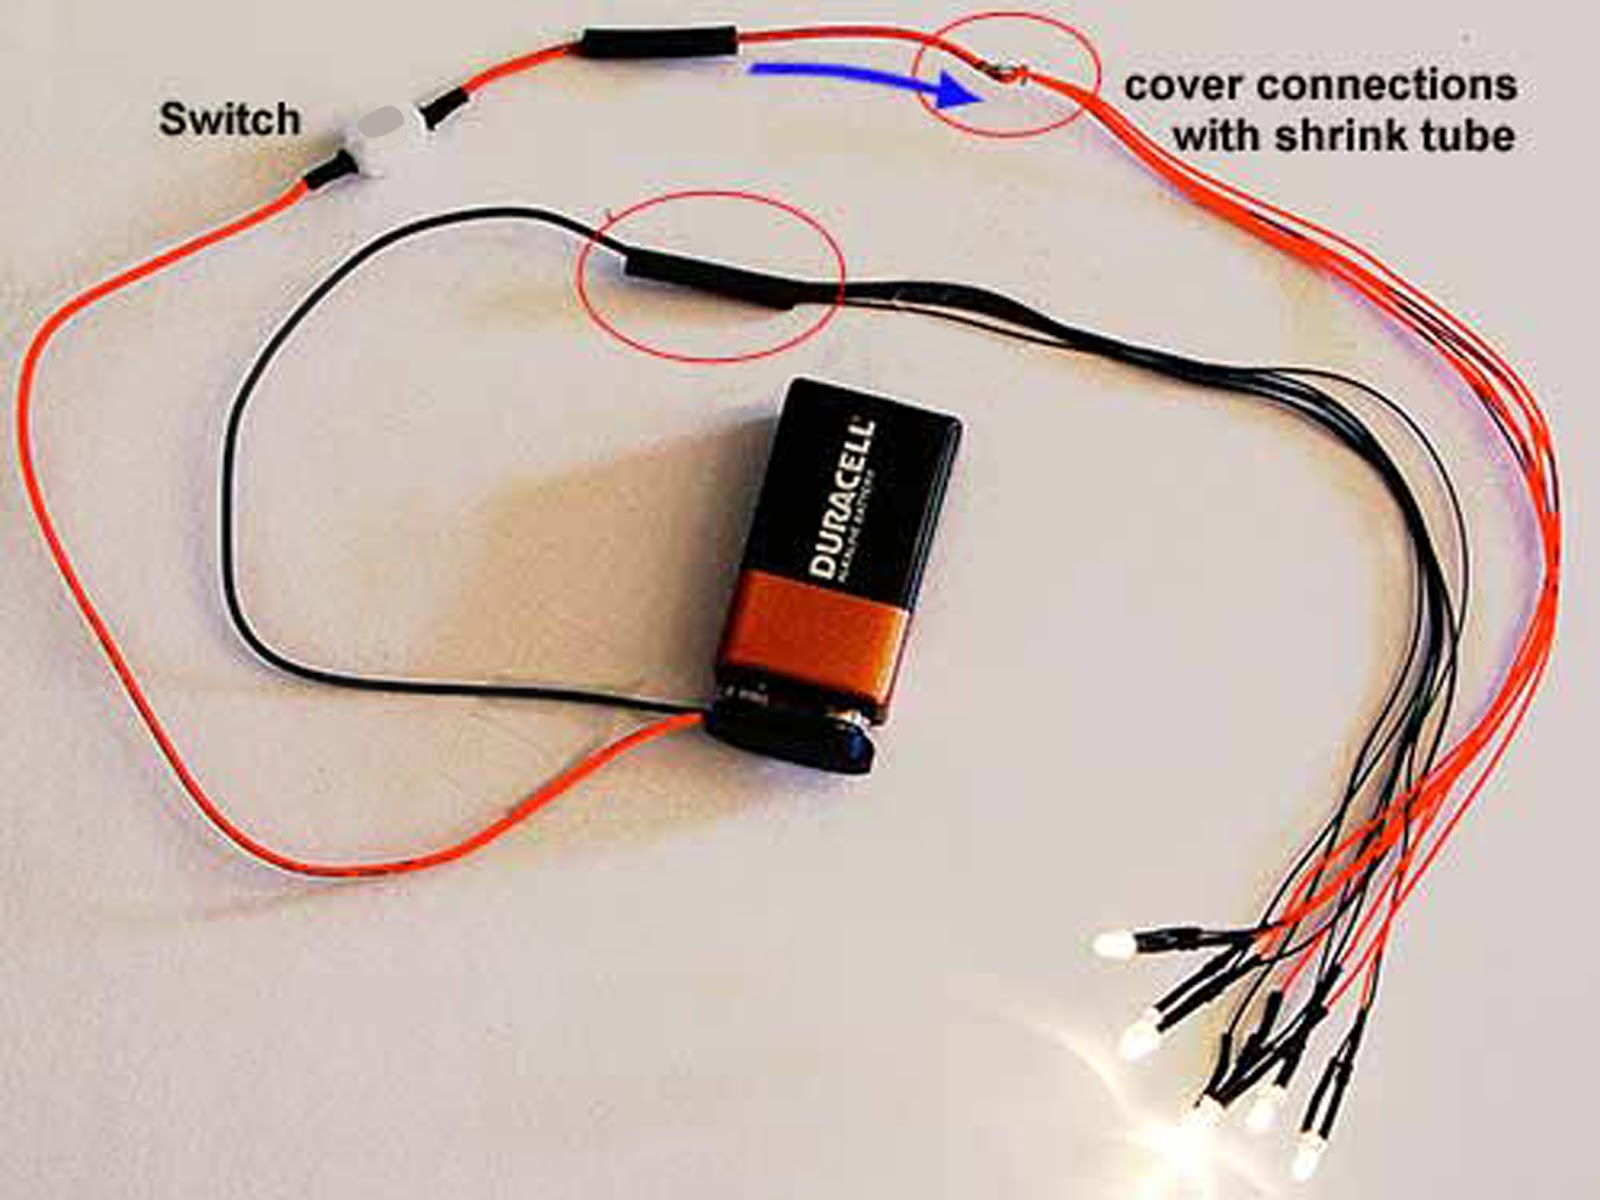 9v Battery Diagram 1971 Bmw 2002 Wiring Led For Dollhouse Miniatures October 2012